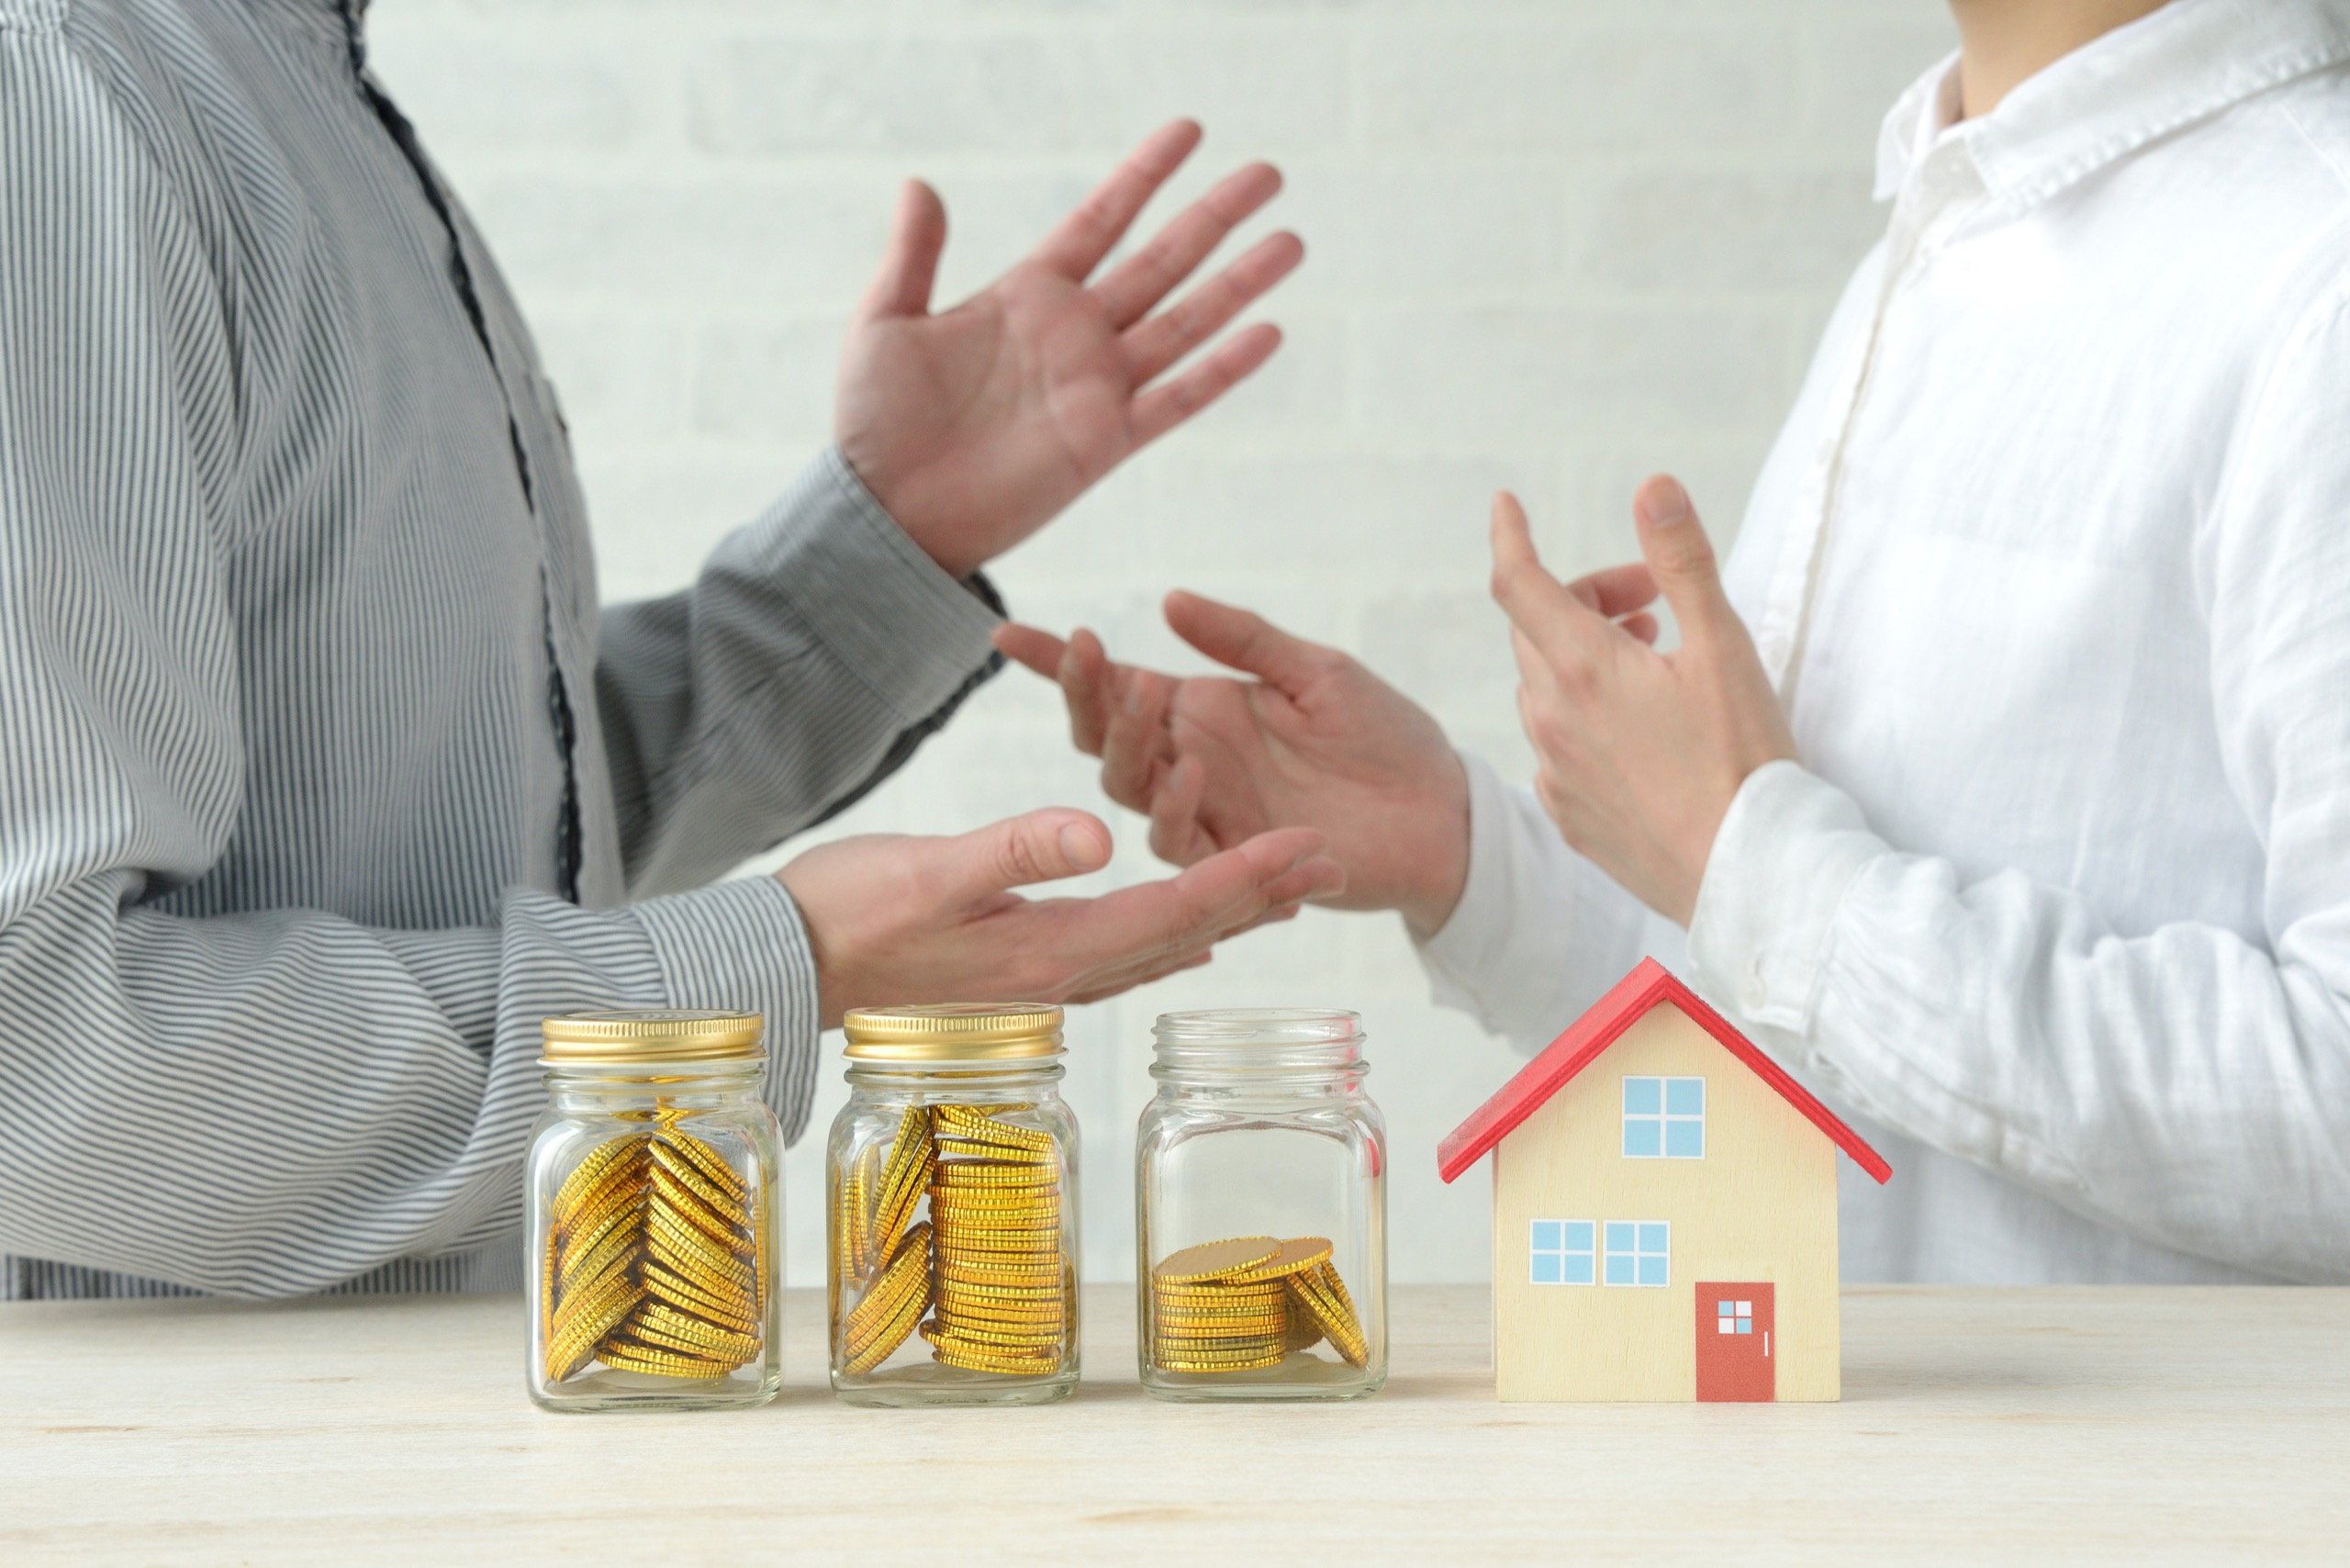 Landlord and tenant discuss lease renewal